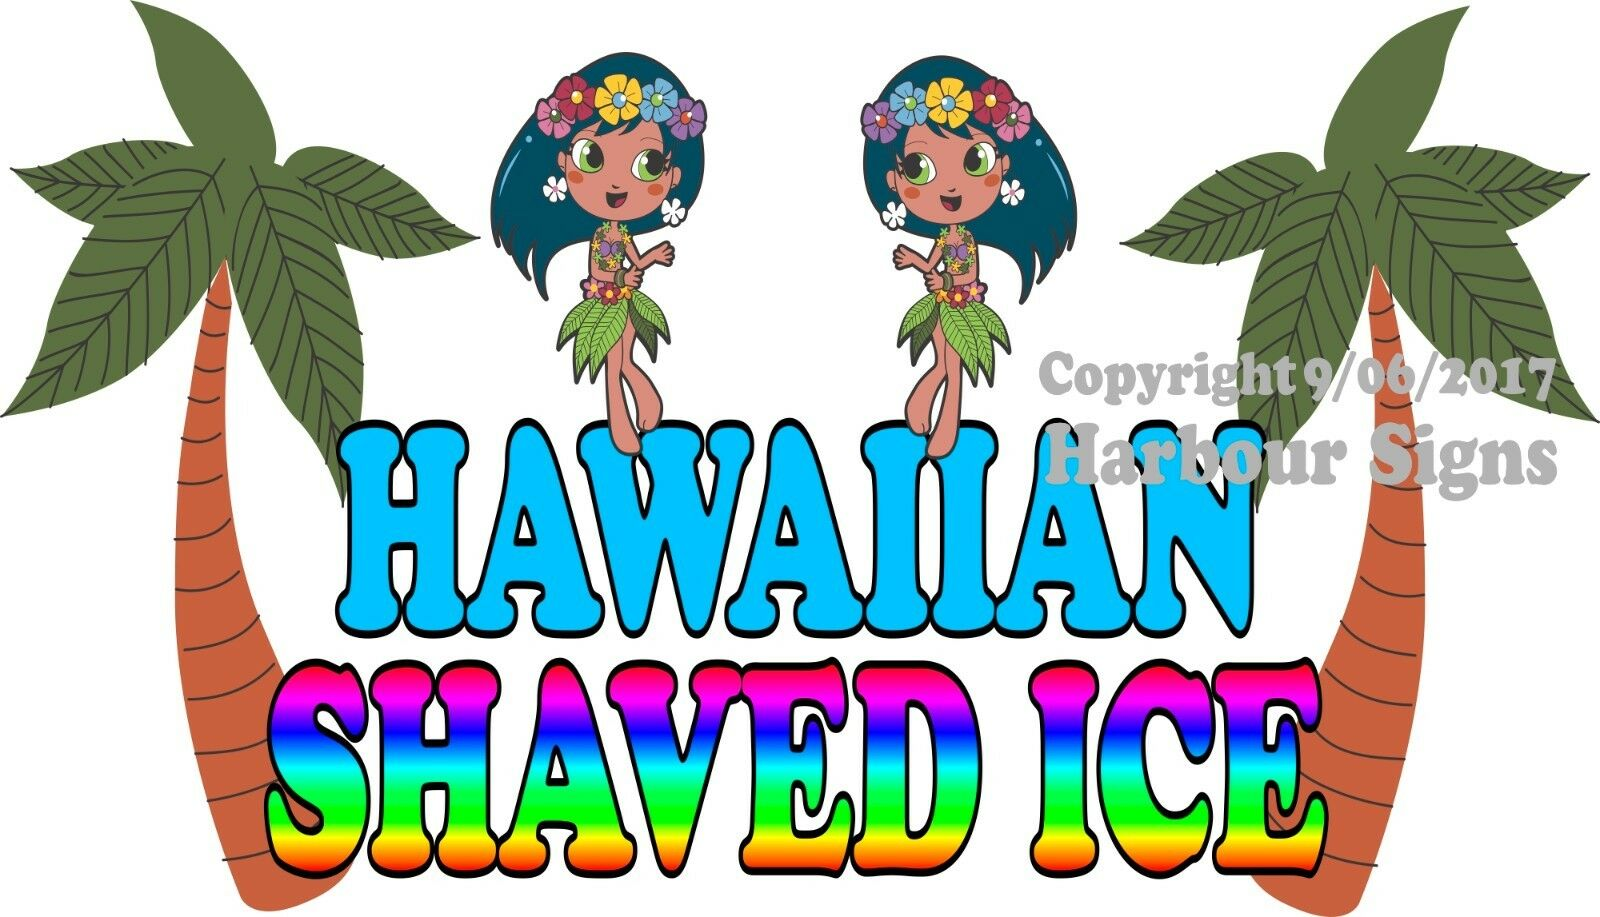 hawaiian-shaved-ice-signs